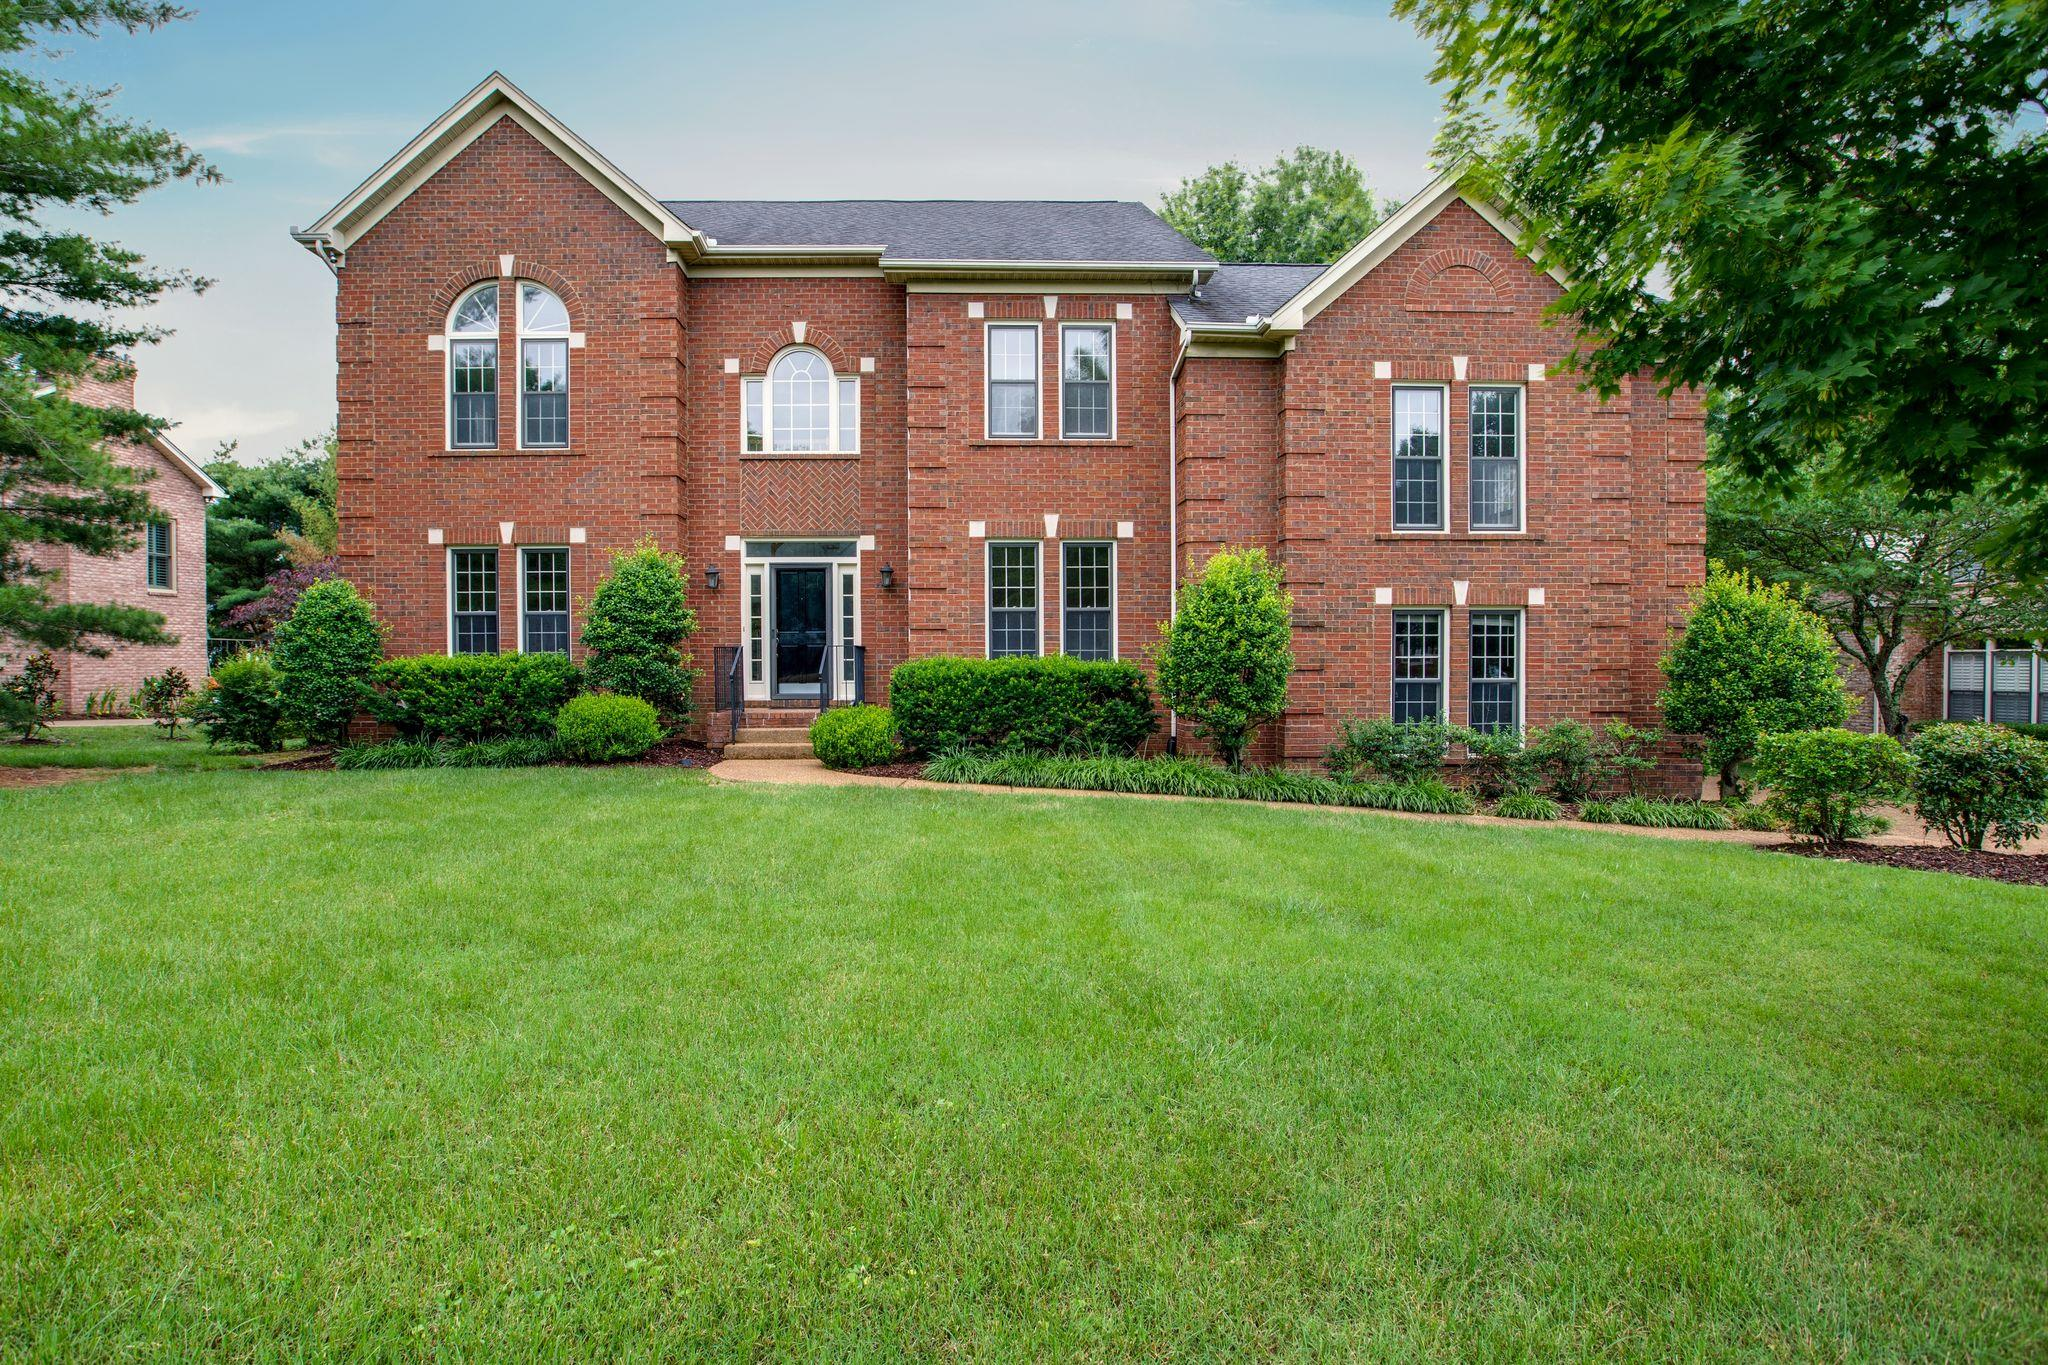 905 Grapevine Lane, Bellevue, Tennessee